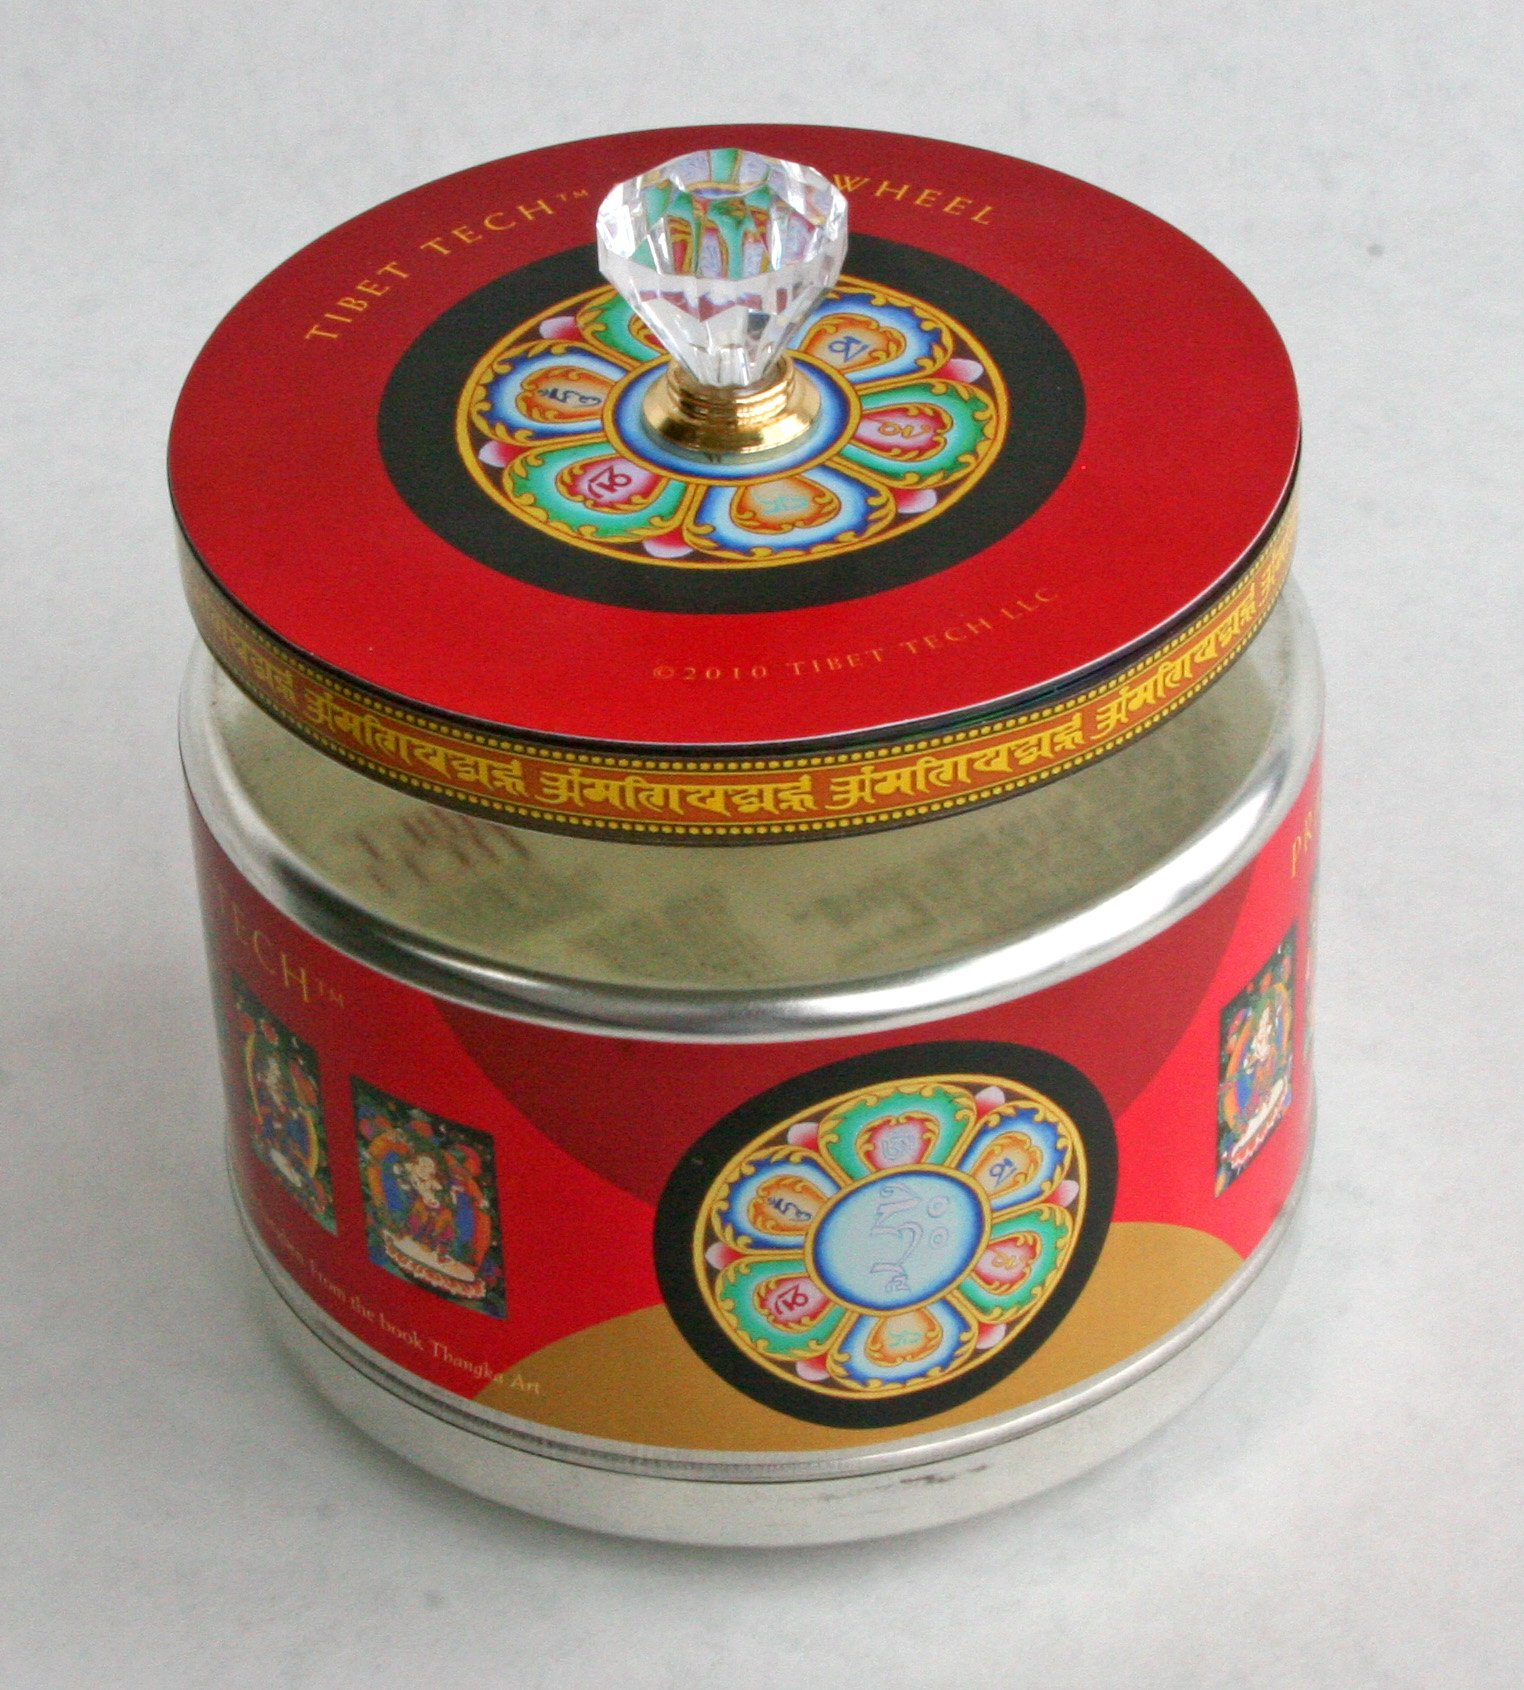 Tibet Tech ''Two-In-One'' Electric Table-top Prayer Wheel - 8-DVDs with 84,348,750,000 prayers and 1-DVD with 16,003,200,000 Medicine Buddha prayers